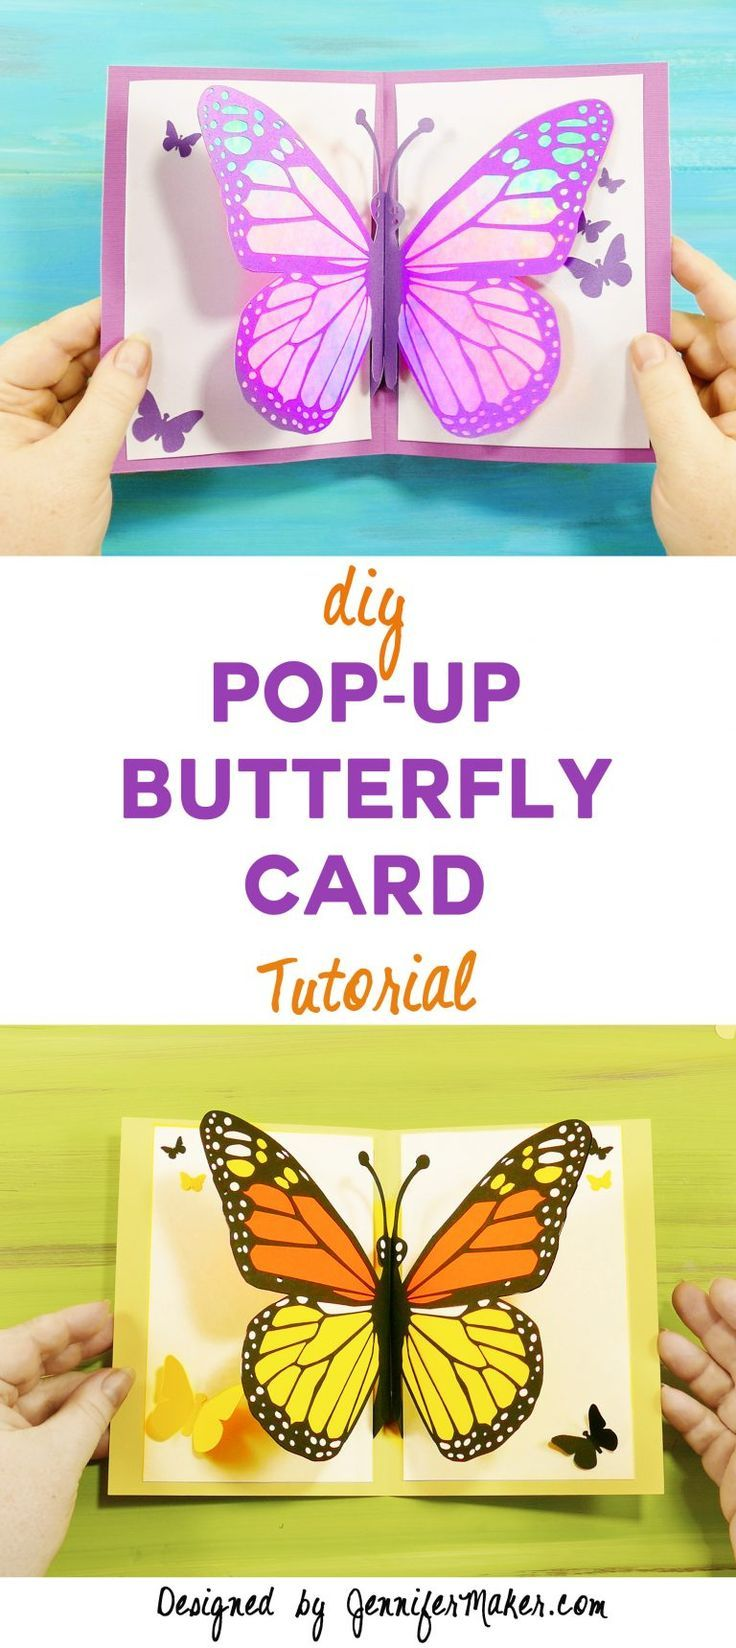 Easy Butterfly Card Diy Pop Up Tutorial Jennifer Maker Diy Pop Up Cards Birthday Cards Diy Butterfly Cards